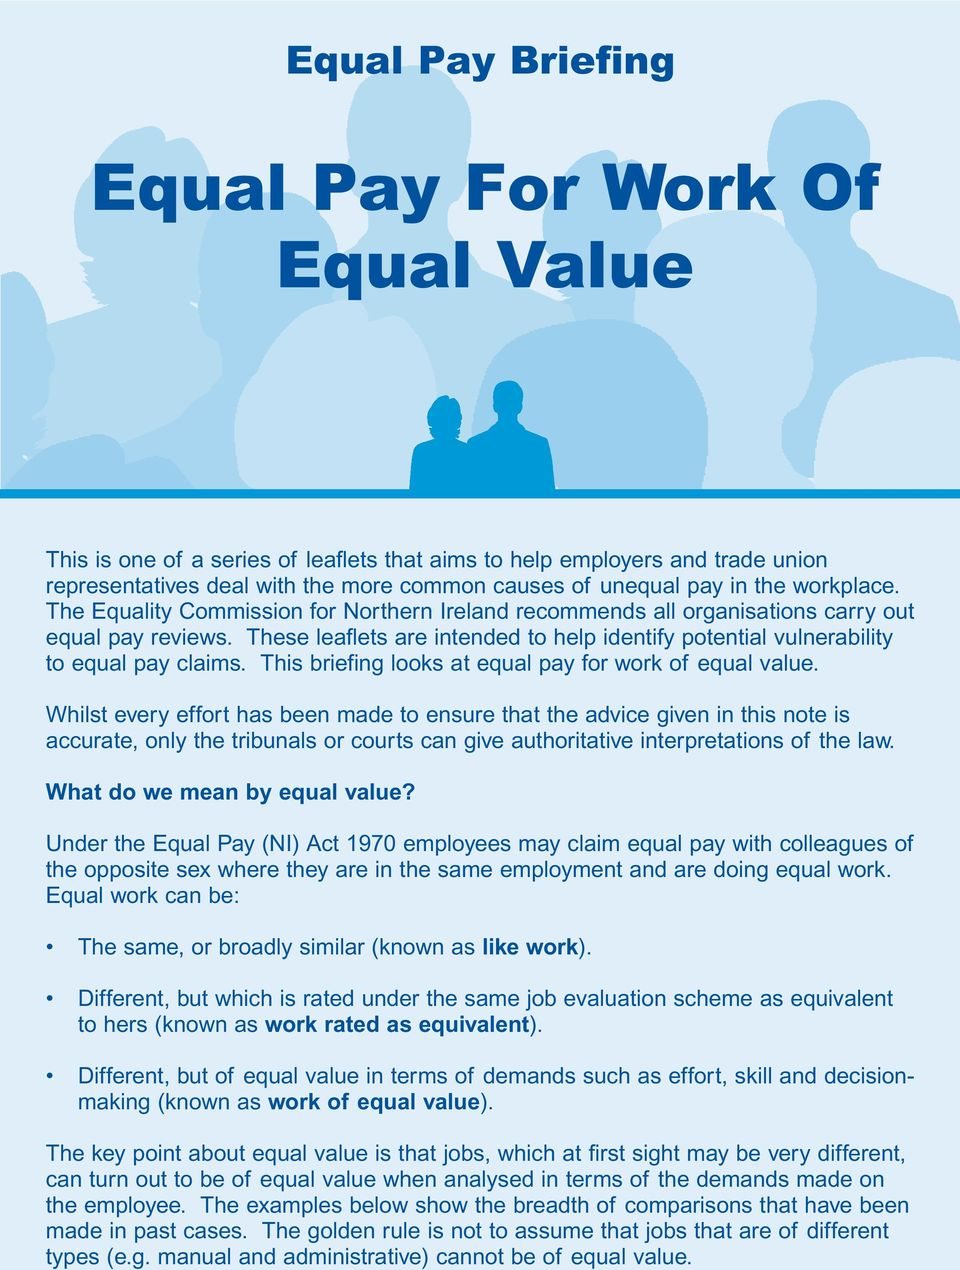 These leaflets are intended to help identify potential vulnerability to equal pay claims. This briefing looks at equal pay for work of equal value.